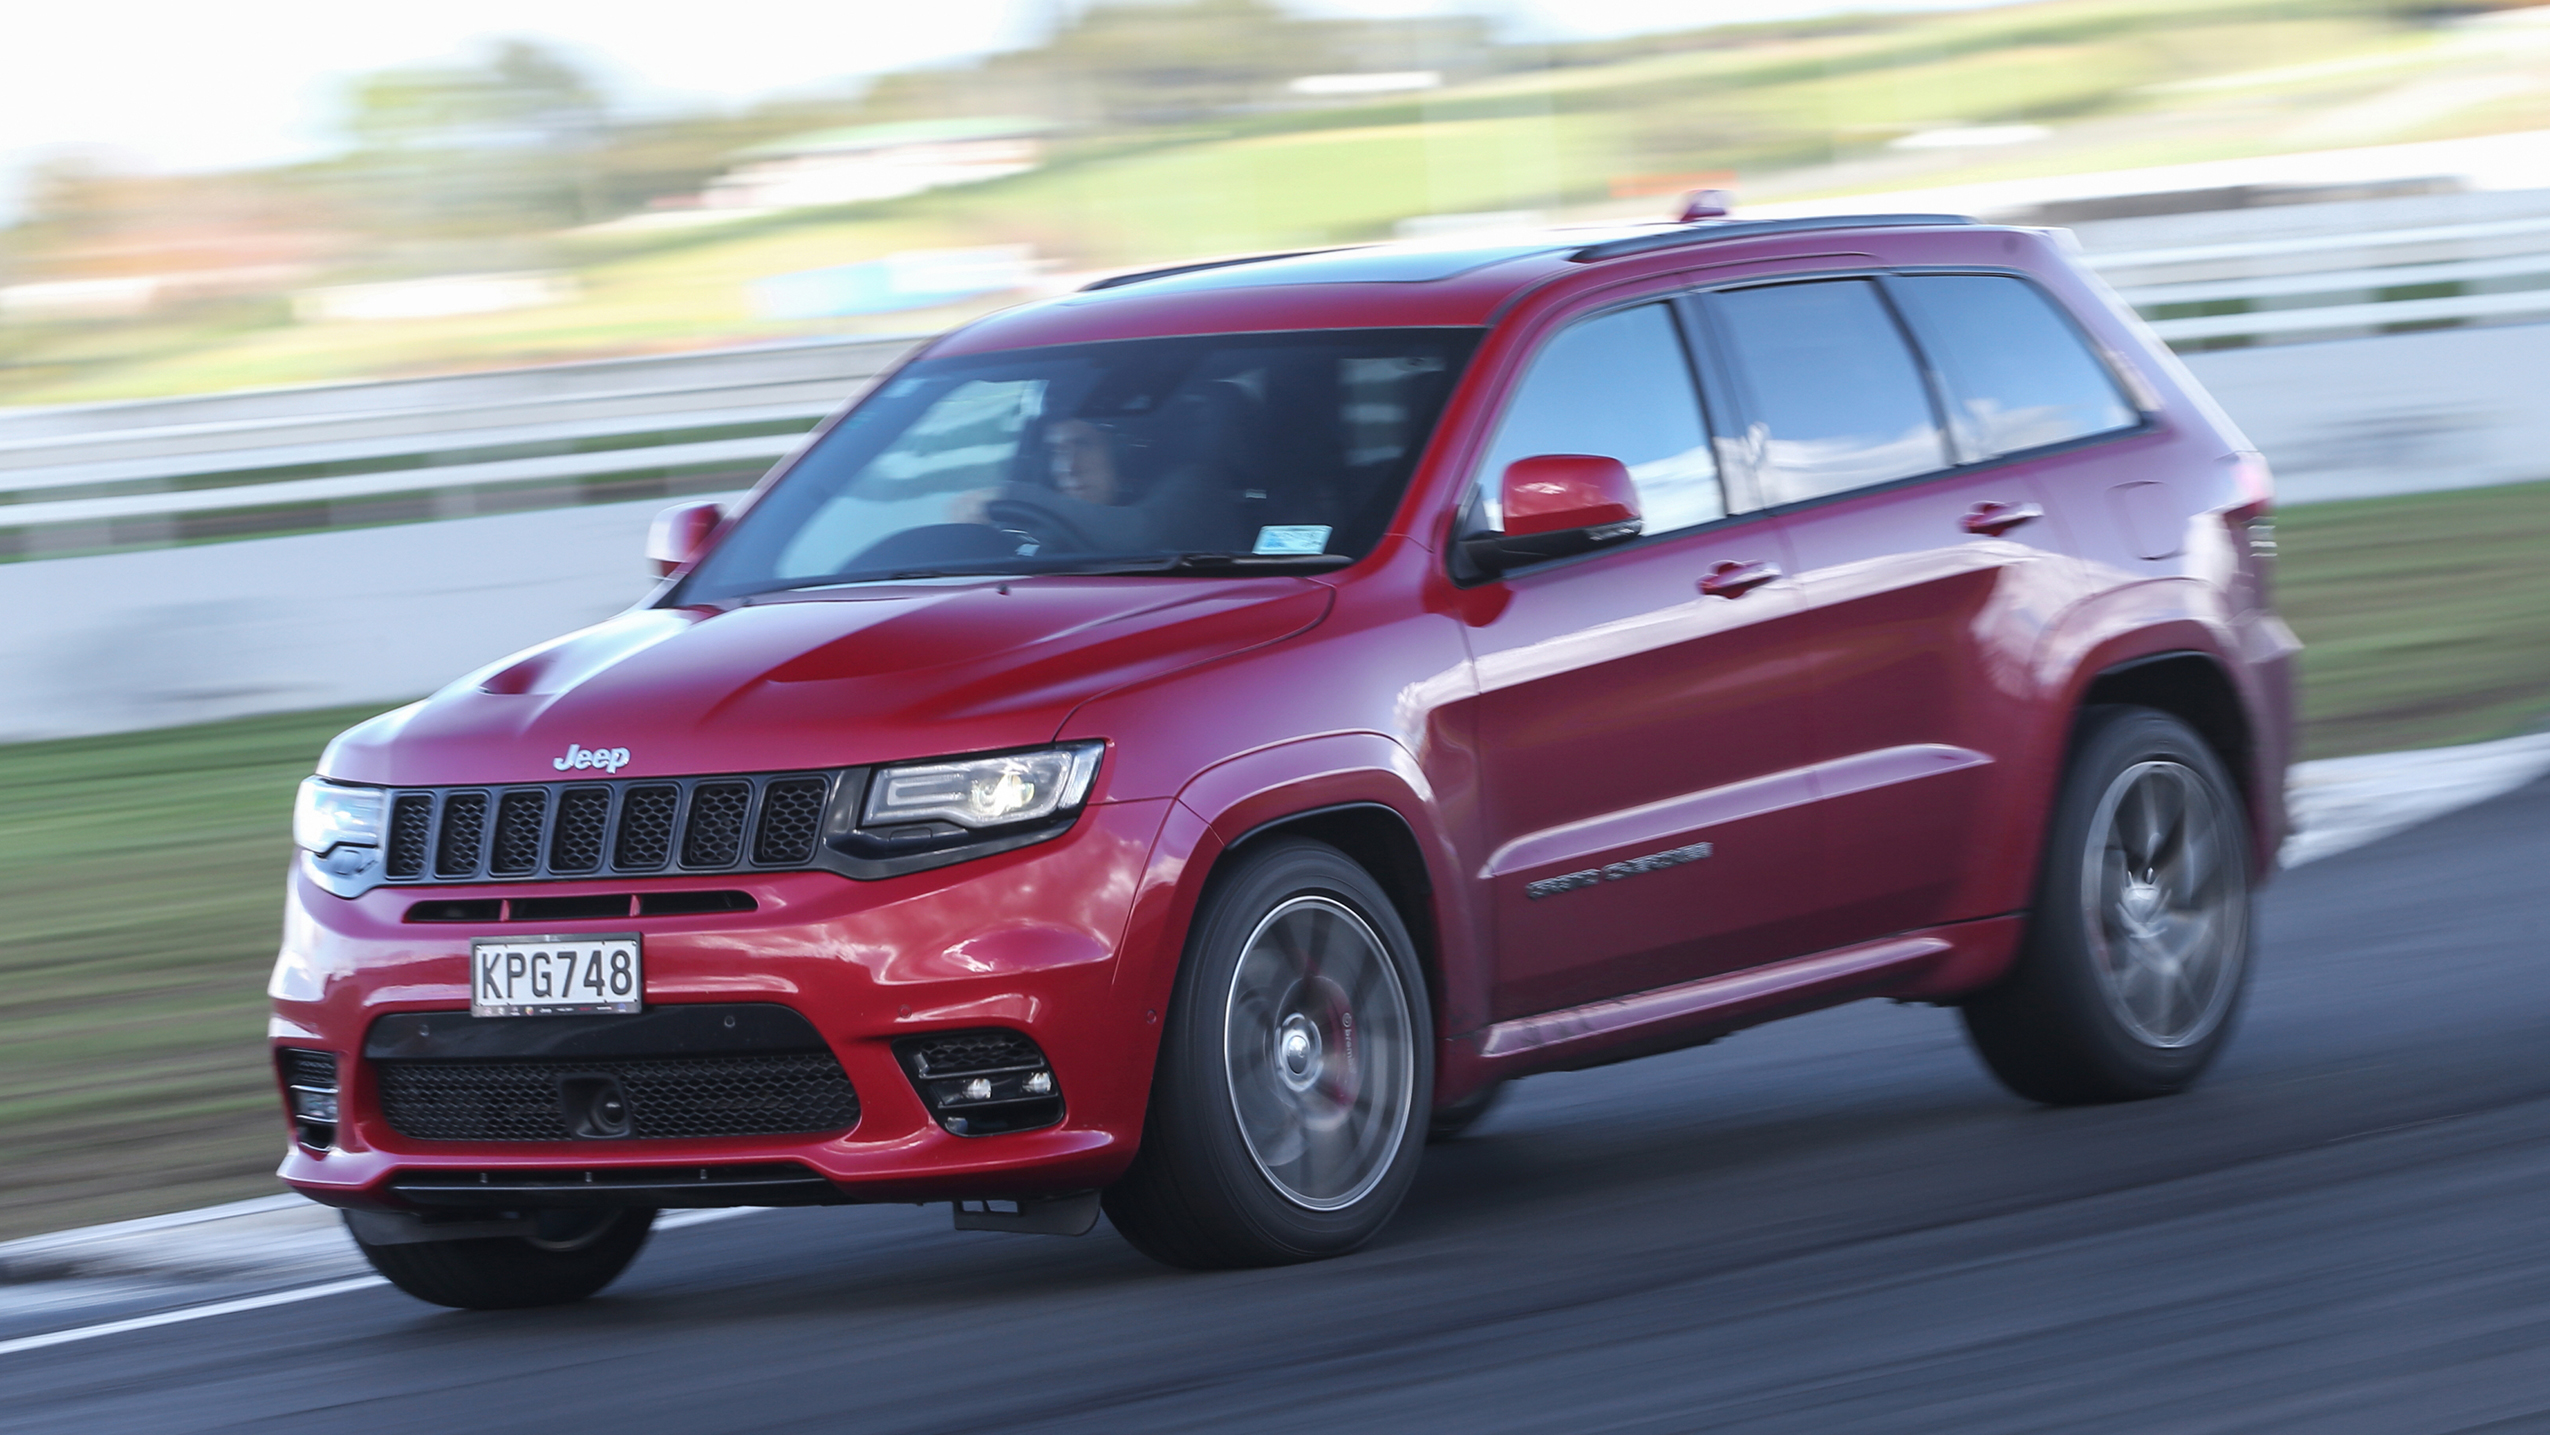 2017 jeep grand cherokee review photos caradvice. Black Bedroom Furniture Sets. Home Design Ideas